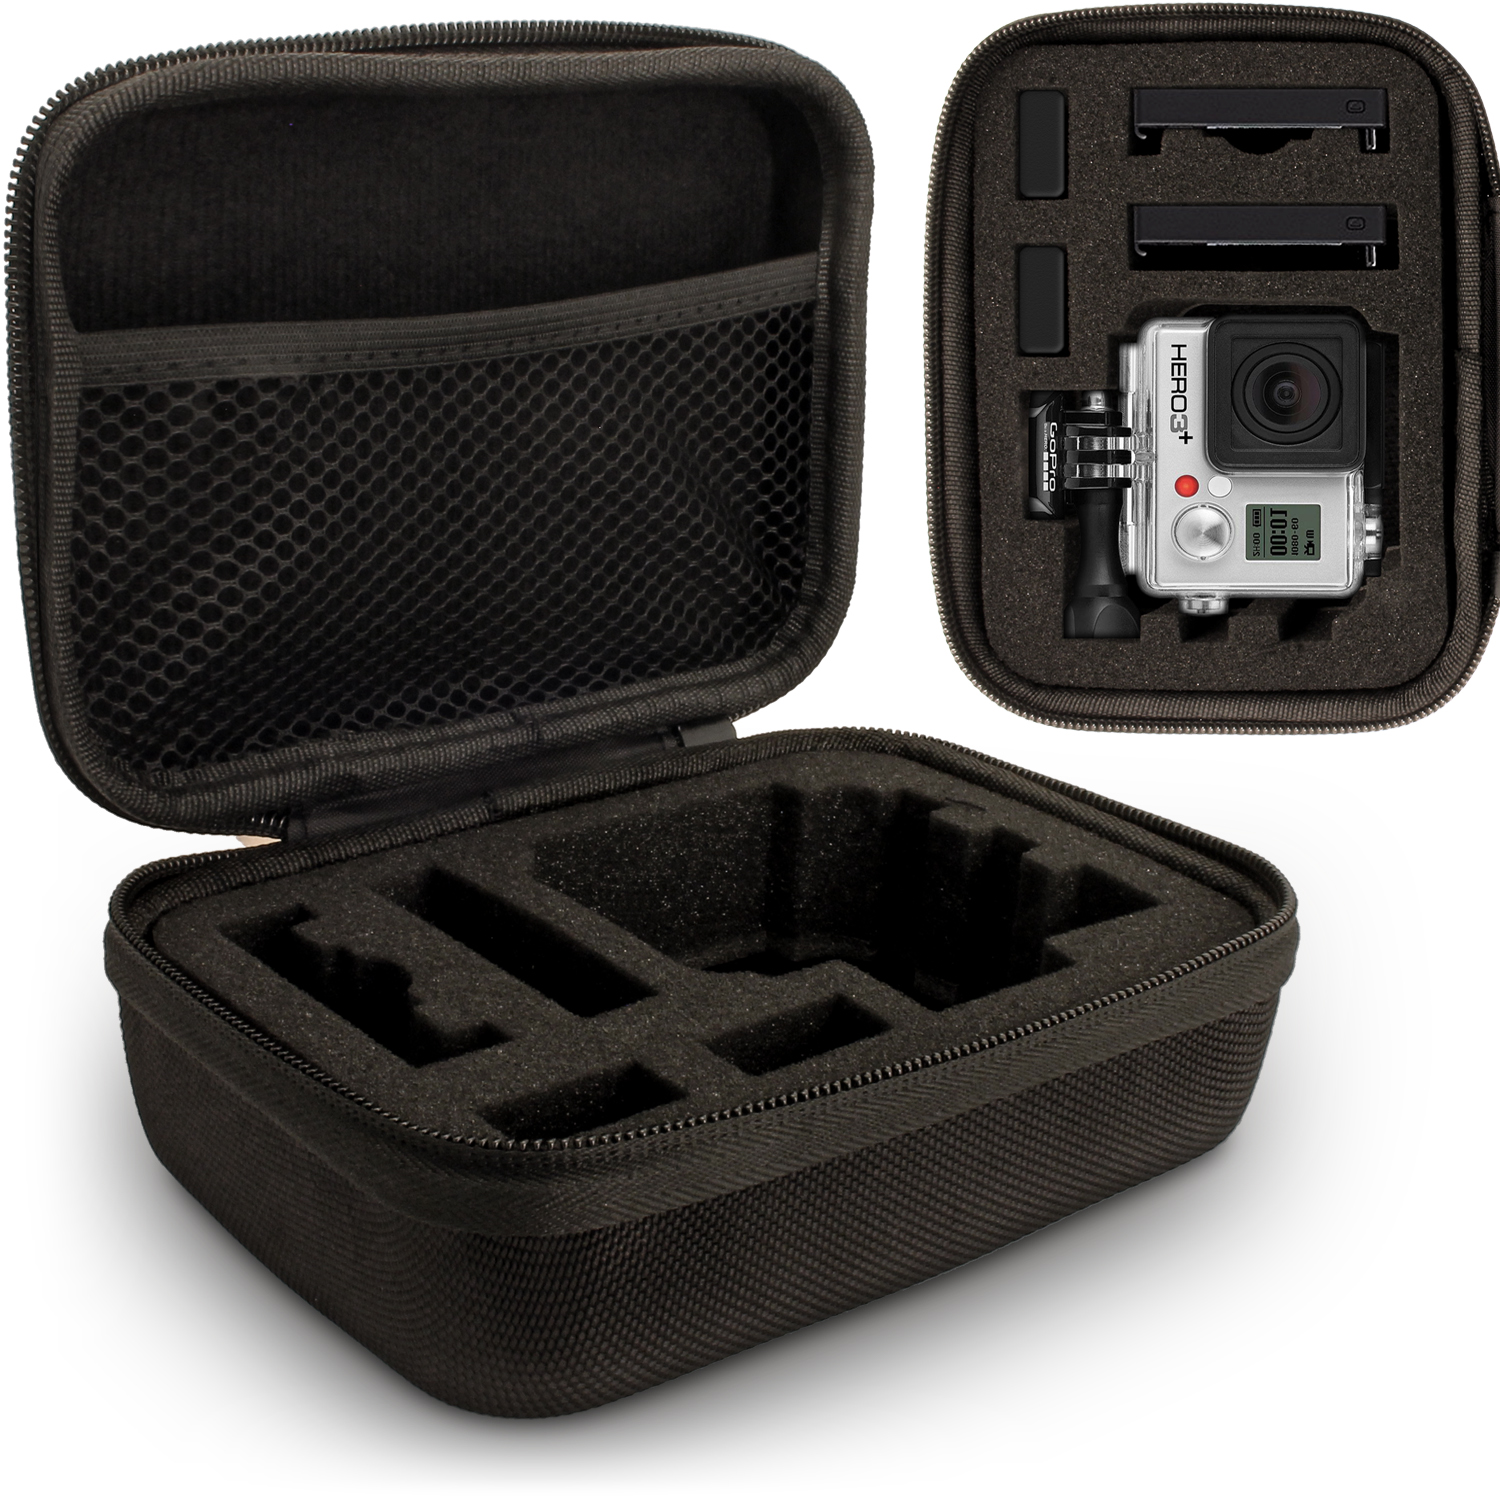 Optix Pro Small EVA Hard Travel Case Cover with Zip Closure & Foam Inserts for  GoPro Hero5 4 3+ 3 2 1 Action Cameras